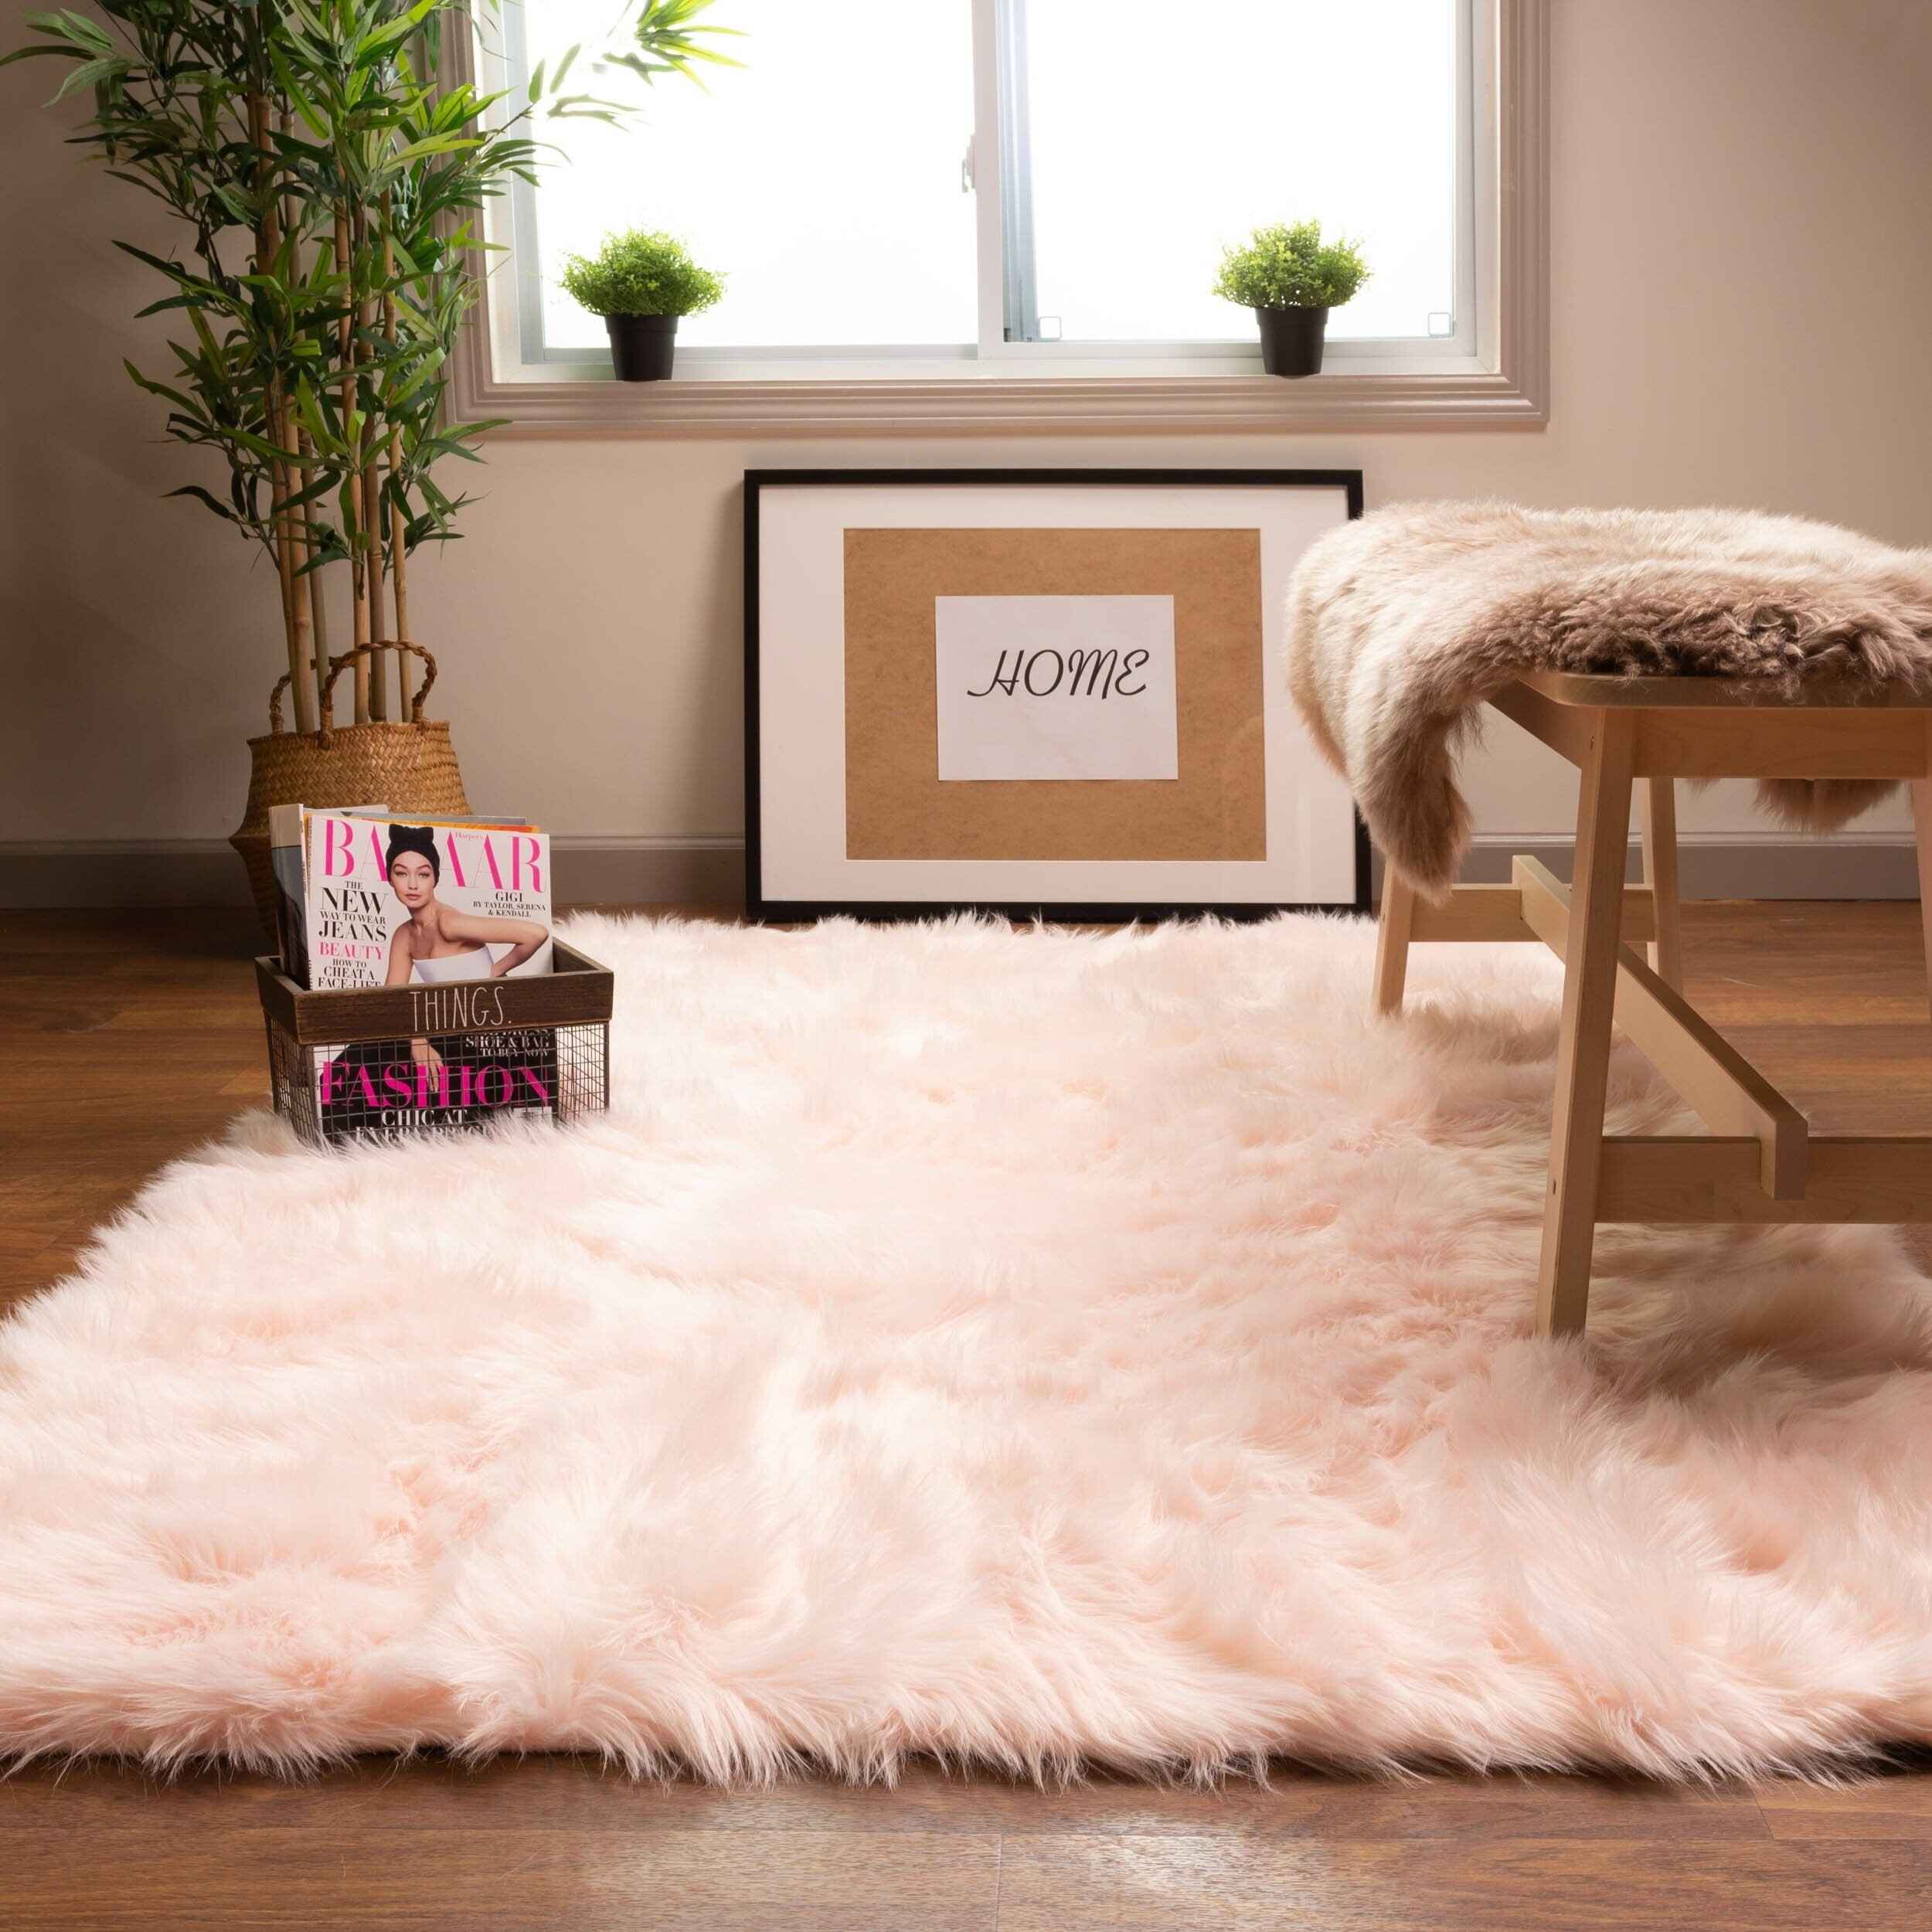 the rug in pink on a living room floor